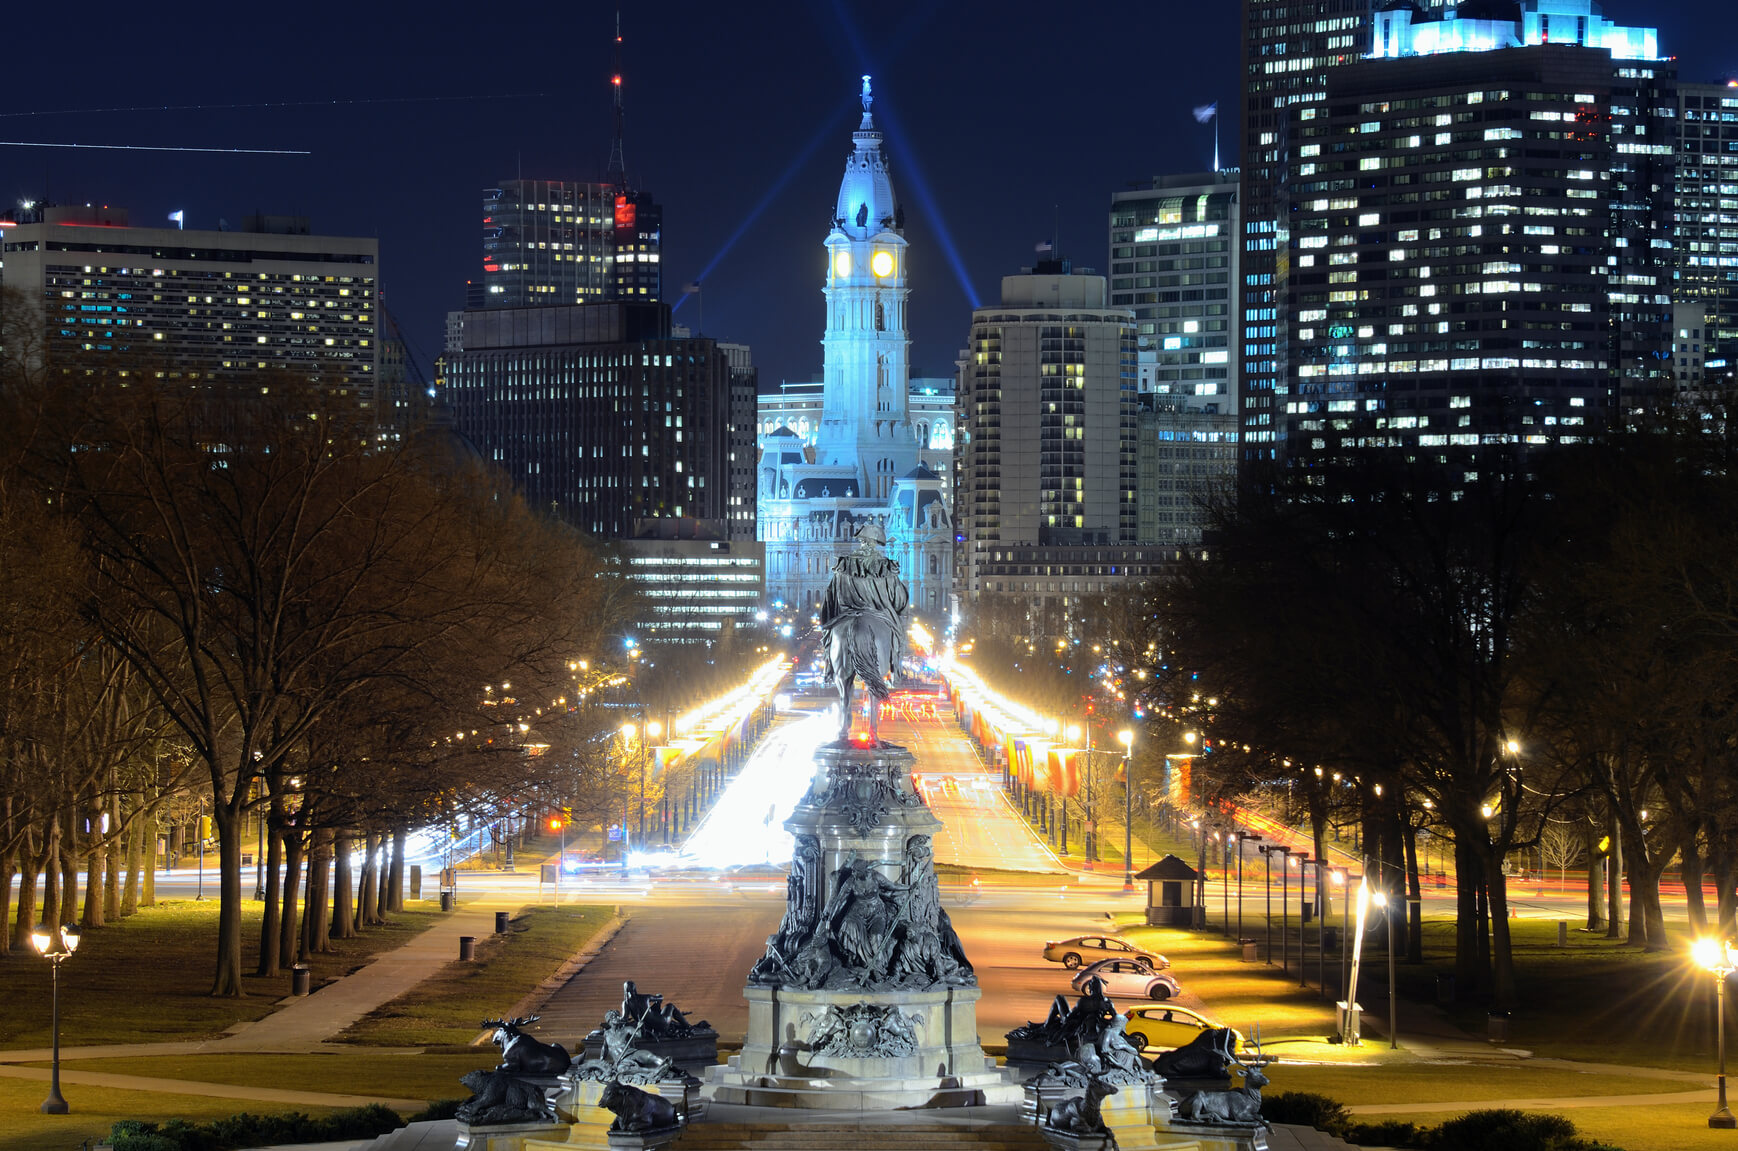 Mexico City, Mexico to Philadelphia, USA for only $292 USD roundtrip